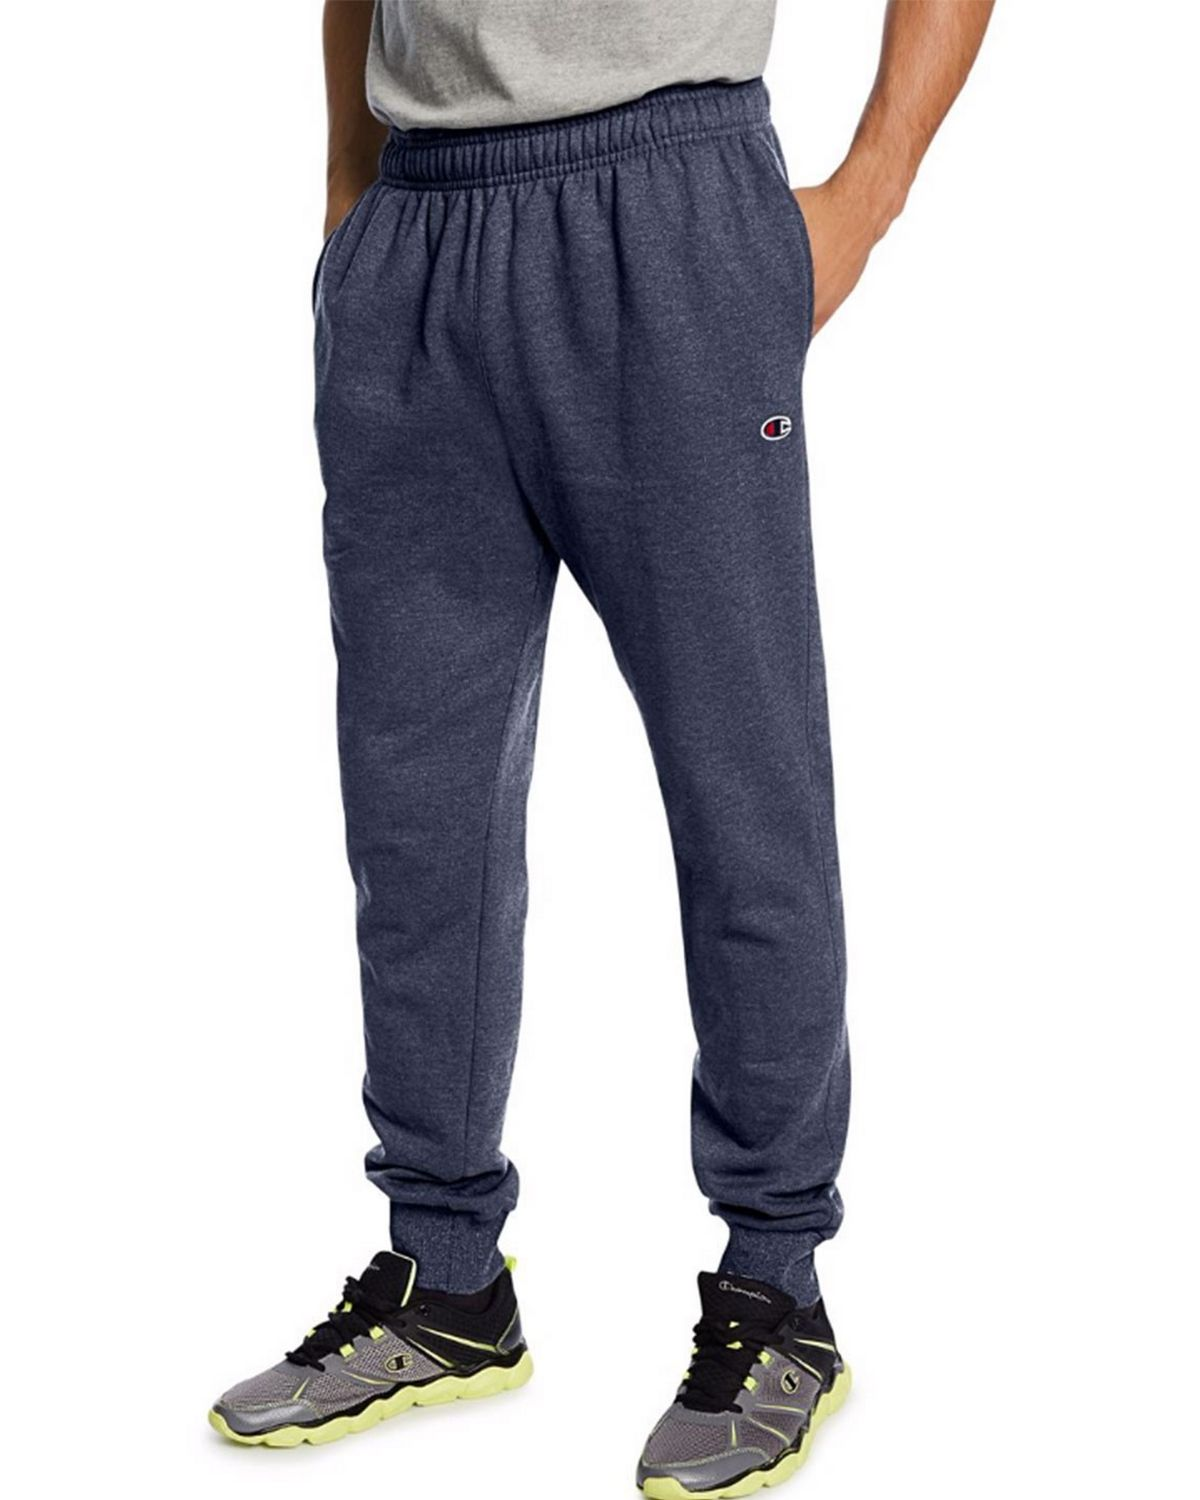 Champion P1022 Mens Fleece Jogger Pants - Navy Heather - XL P1022